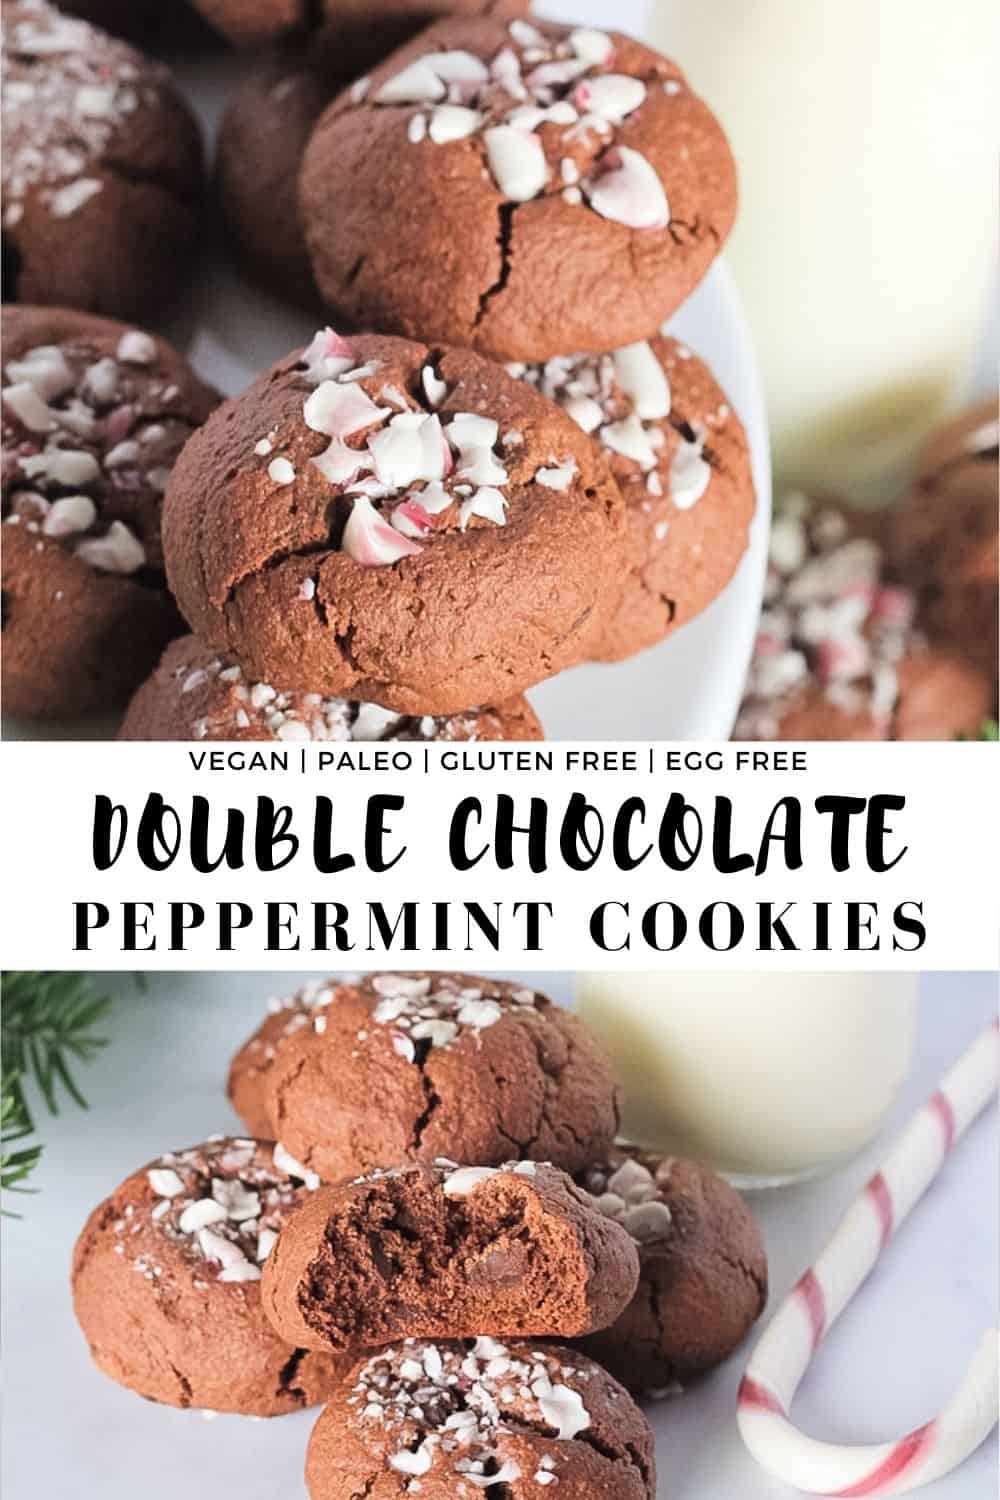 White plate of double chocolate peppermint cookies sprinkled with candy canes. Glass of milk and Christmas pine tree with recipe title.